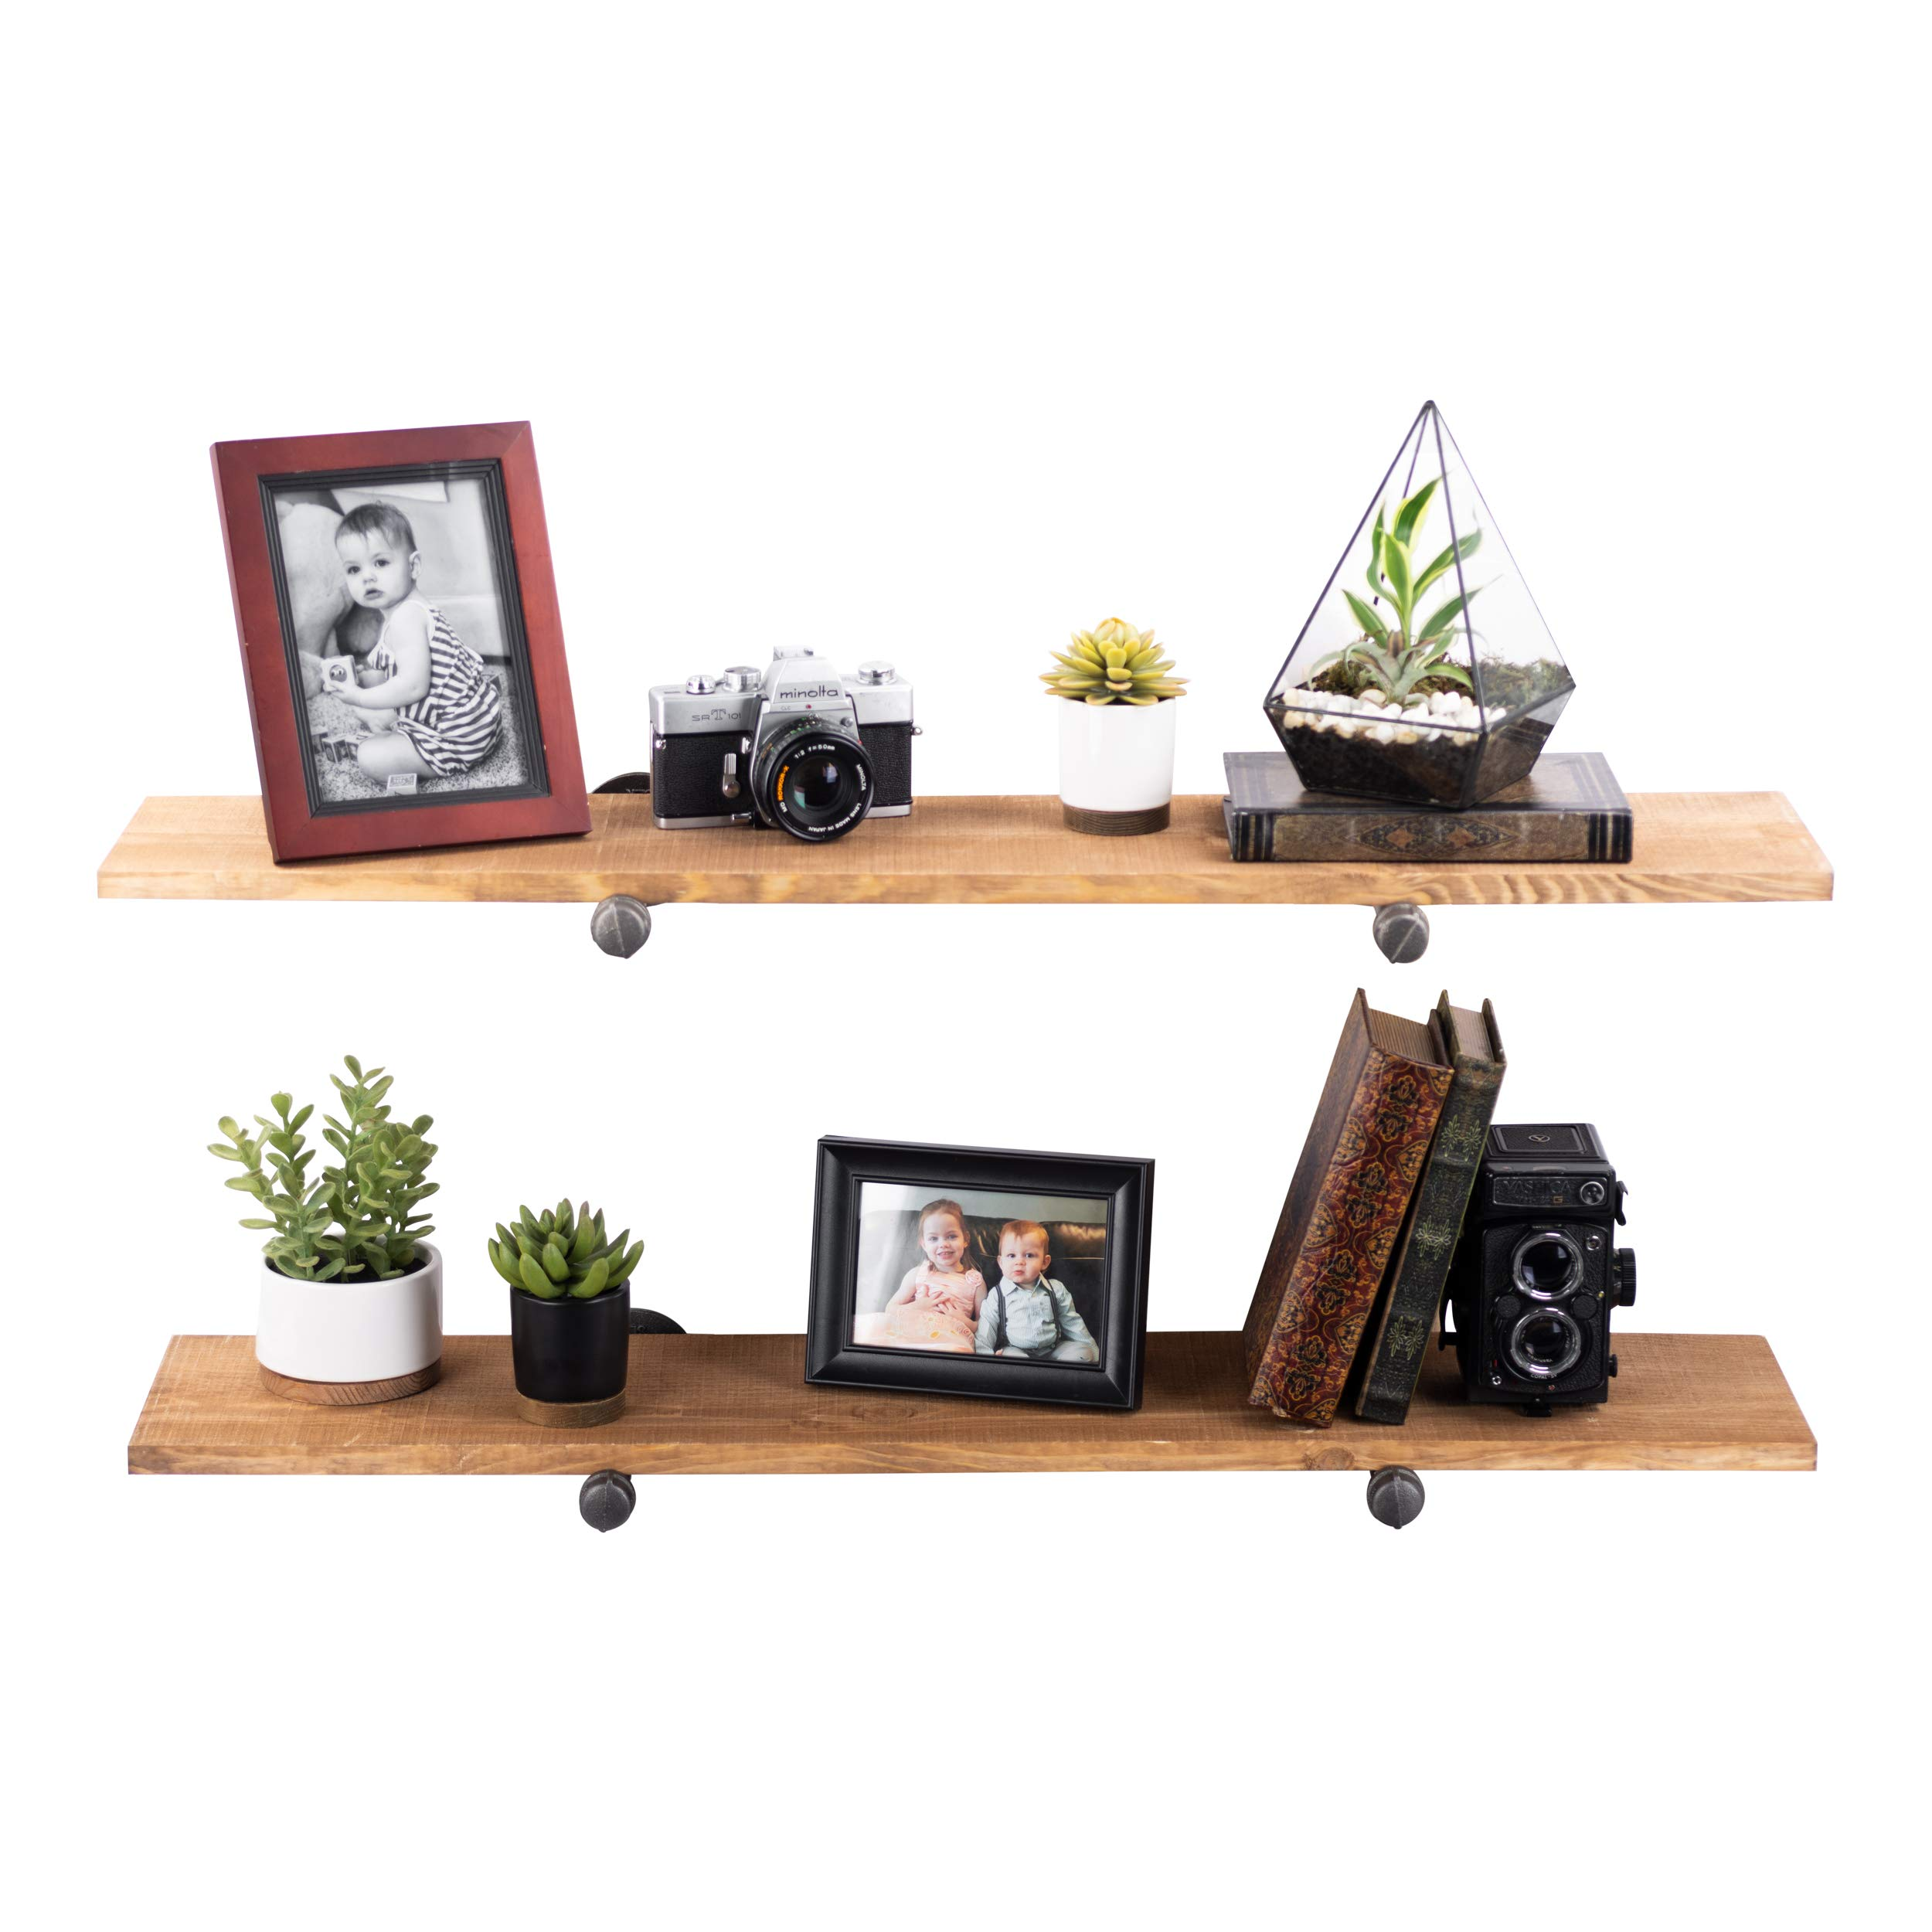 Rustic Industrial Pipe Decor Floating Shelving, 2 Pack Brown, Distressed Aged Wood and Iron Pipes Bracket, Wall Mounted Hanging Shelf, Reclaimed Barnwood Inspired by PIPE DÉCOR (Image #1)